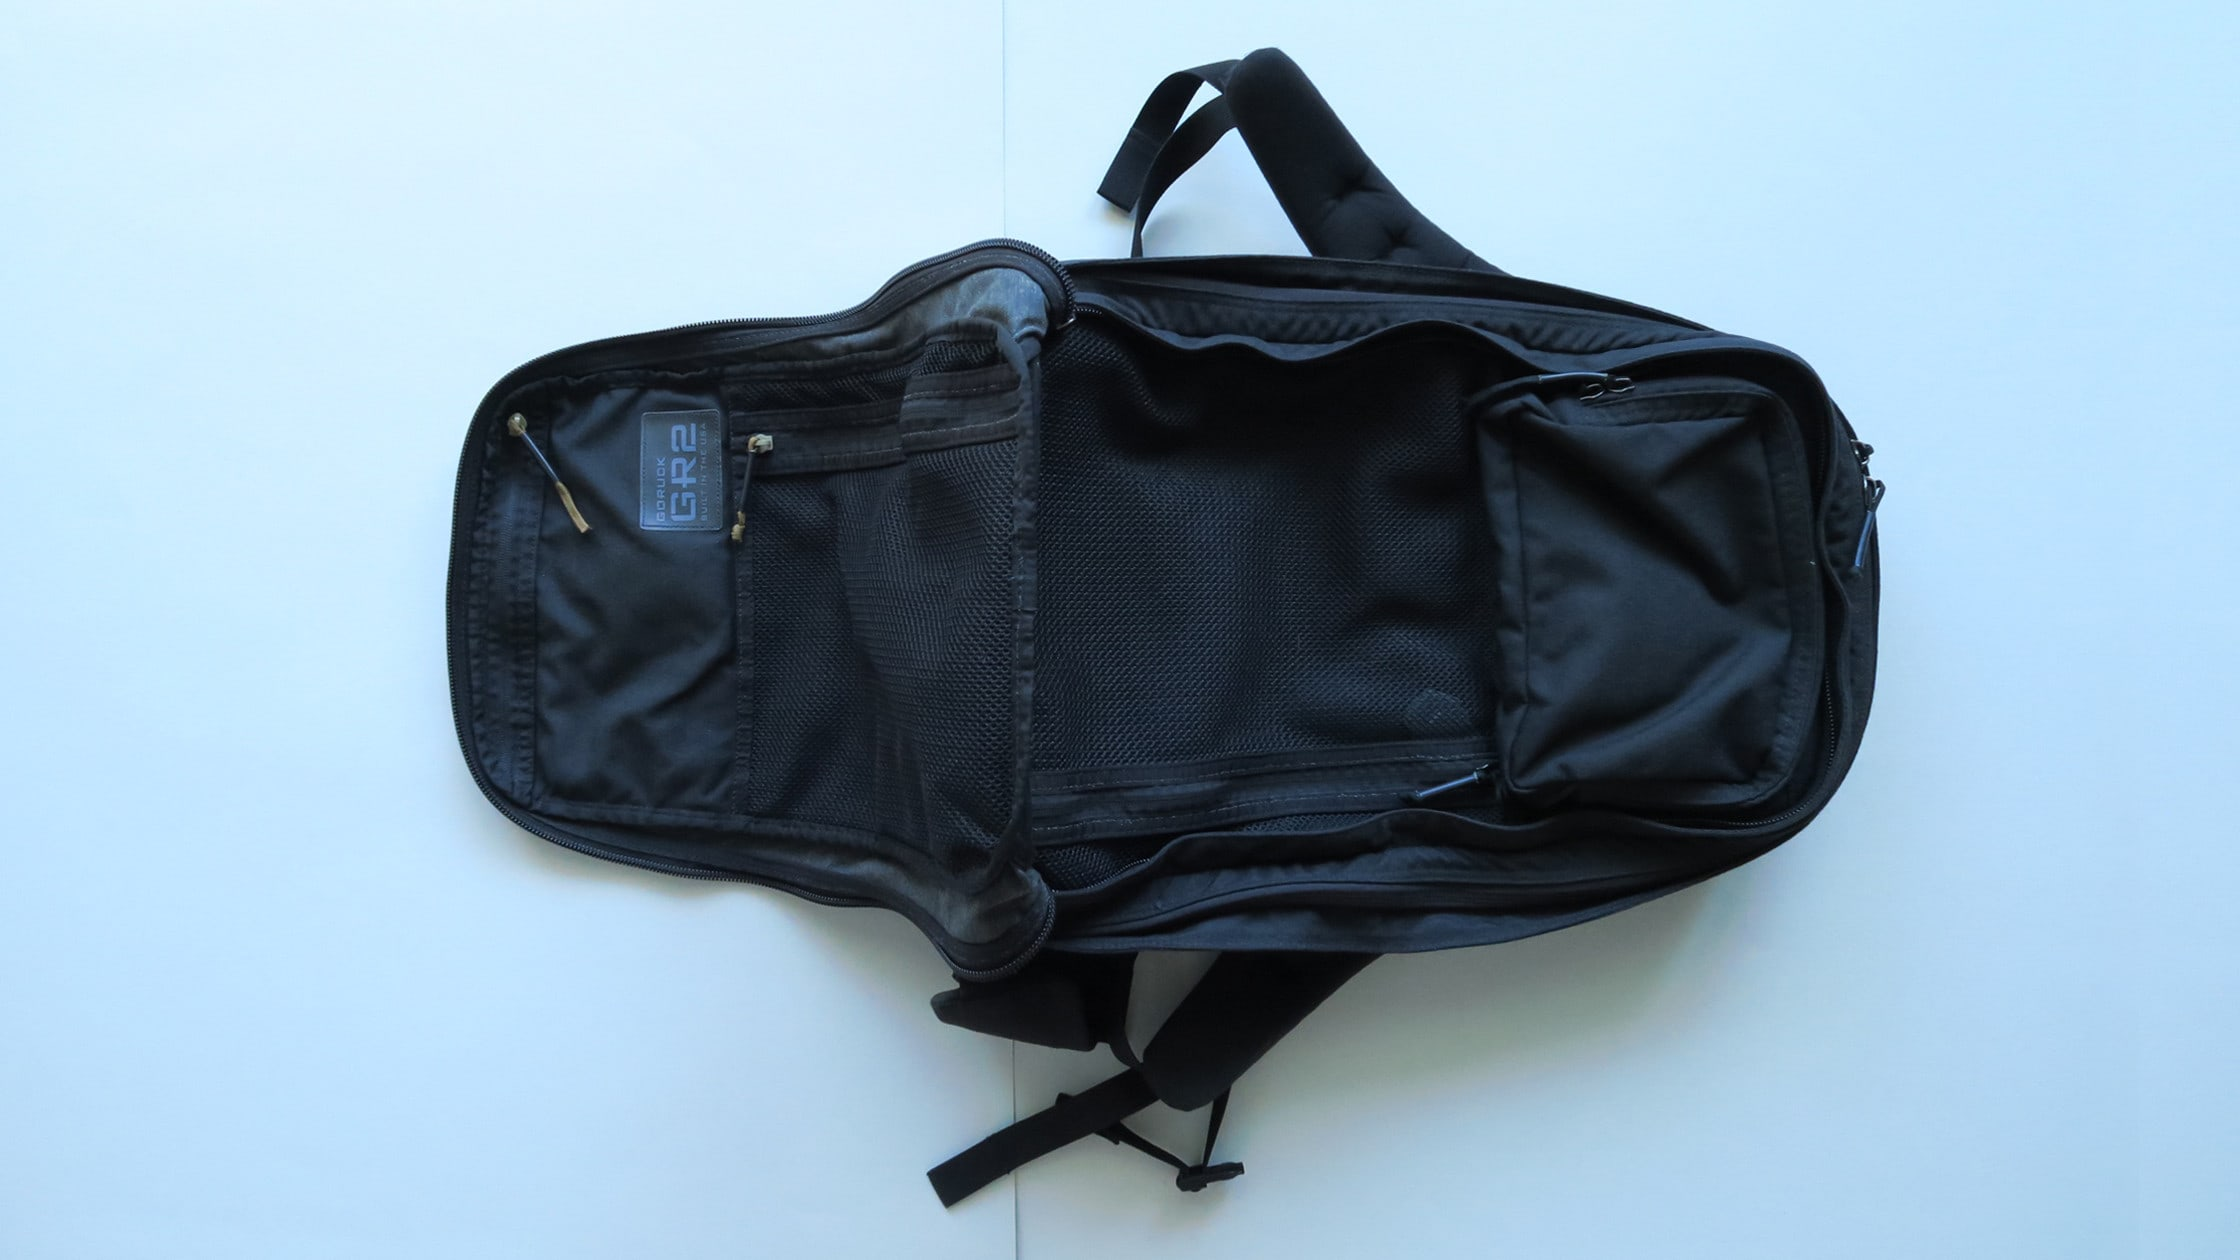 GORUCK GR2 Top Compartment